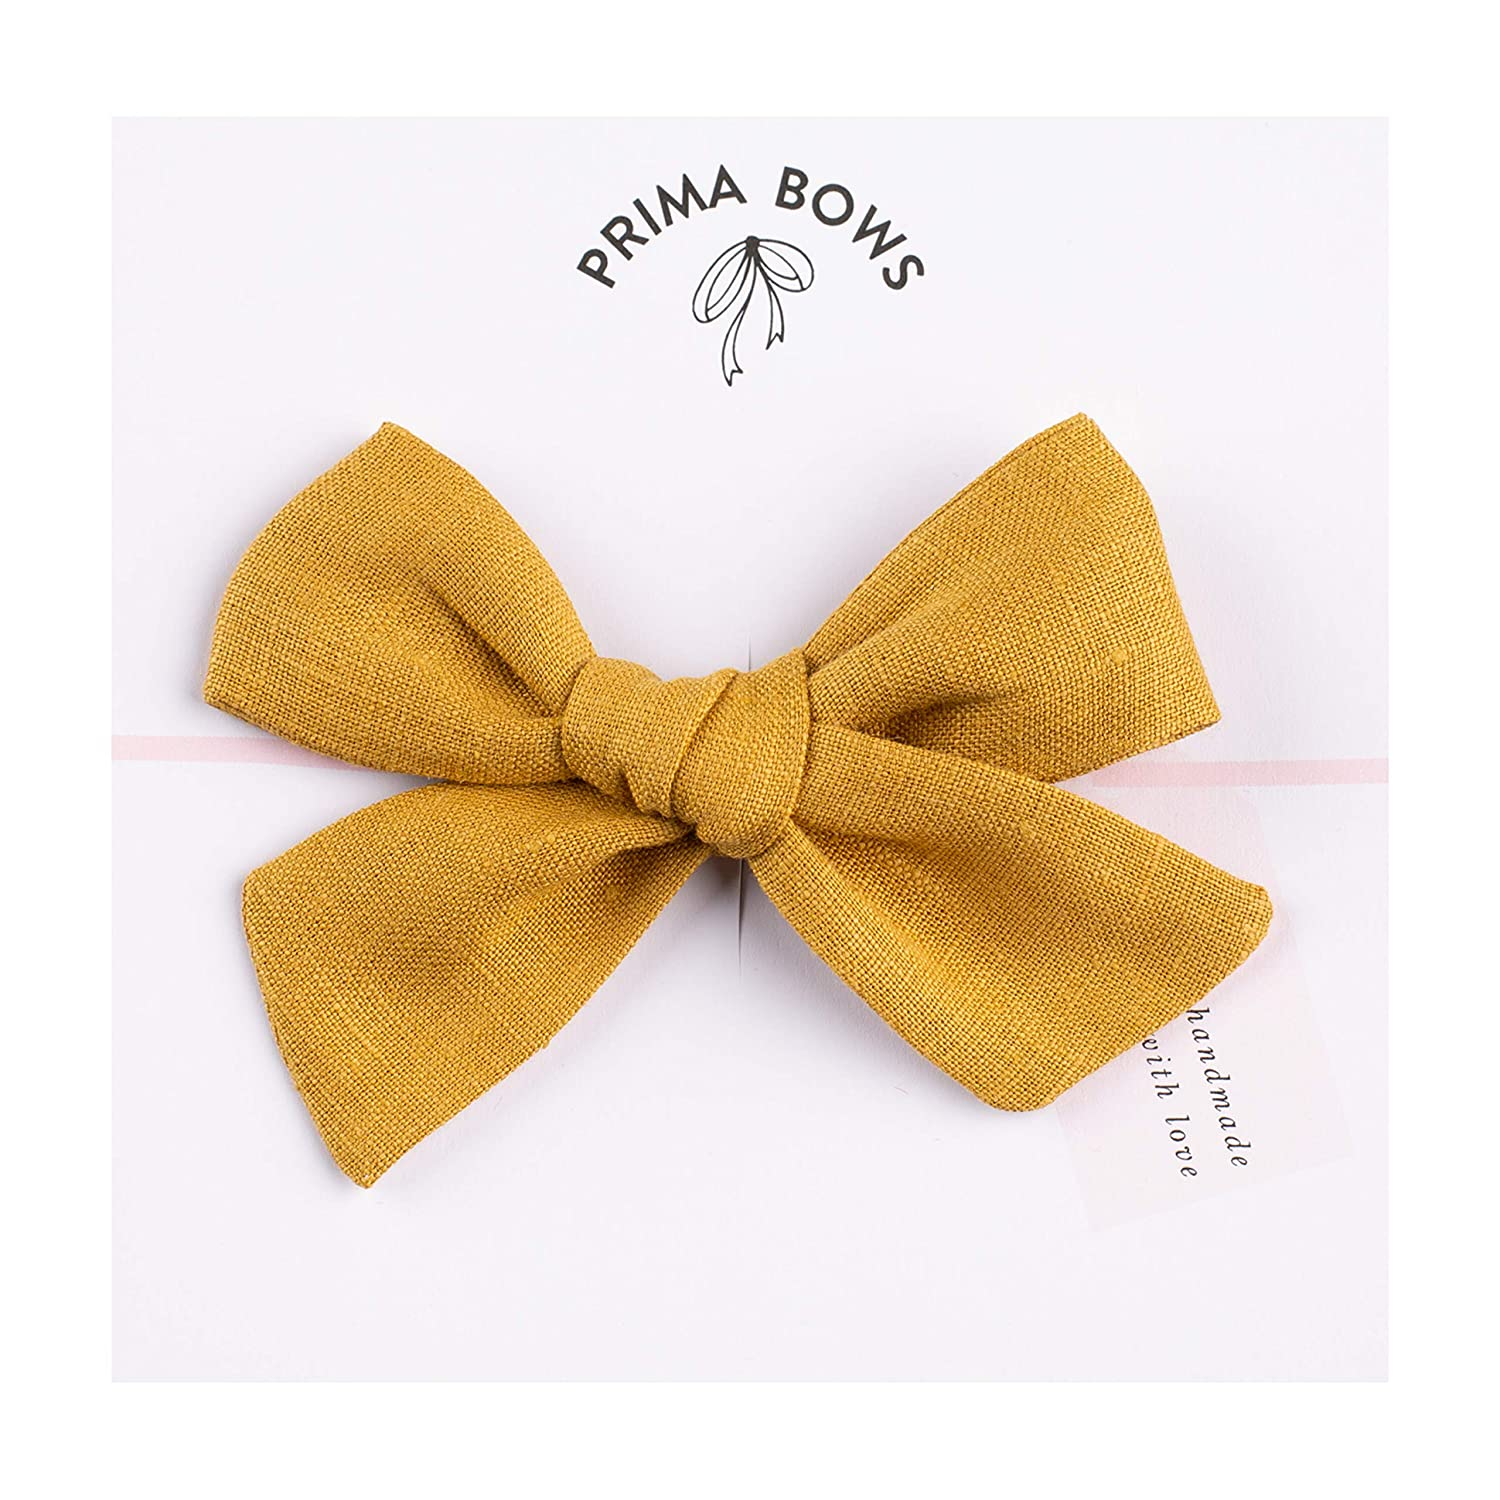 Handmade Linen Fabric Bows For Girls, For Newborns Through Toddlers (1 Size Fits All) - Prima Bows Alligator Clip)